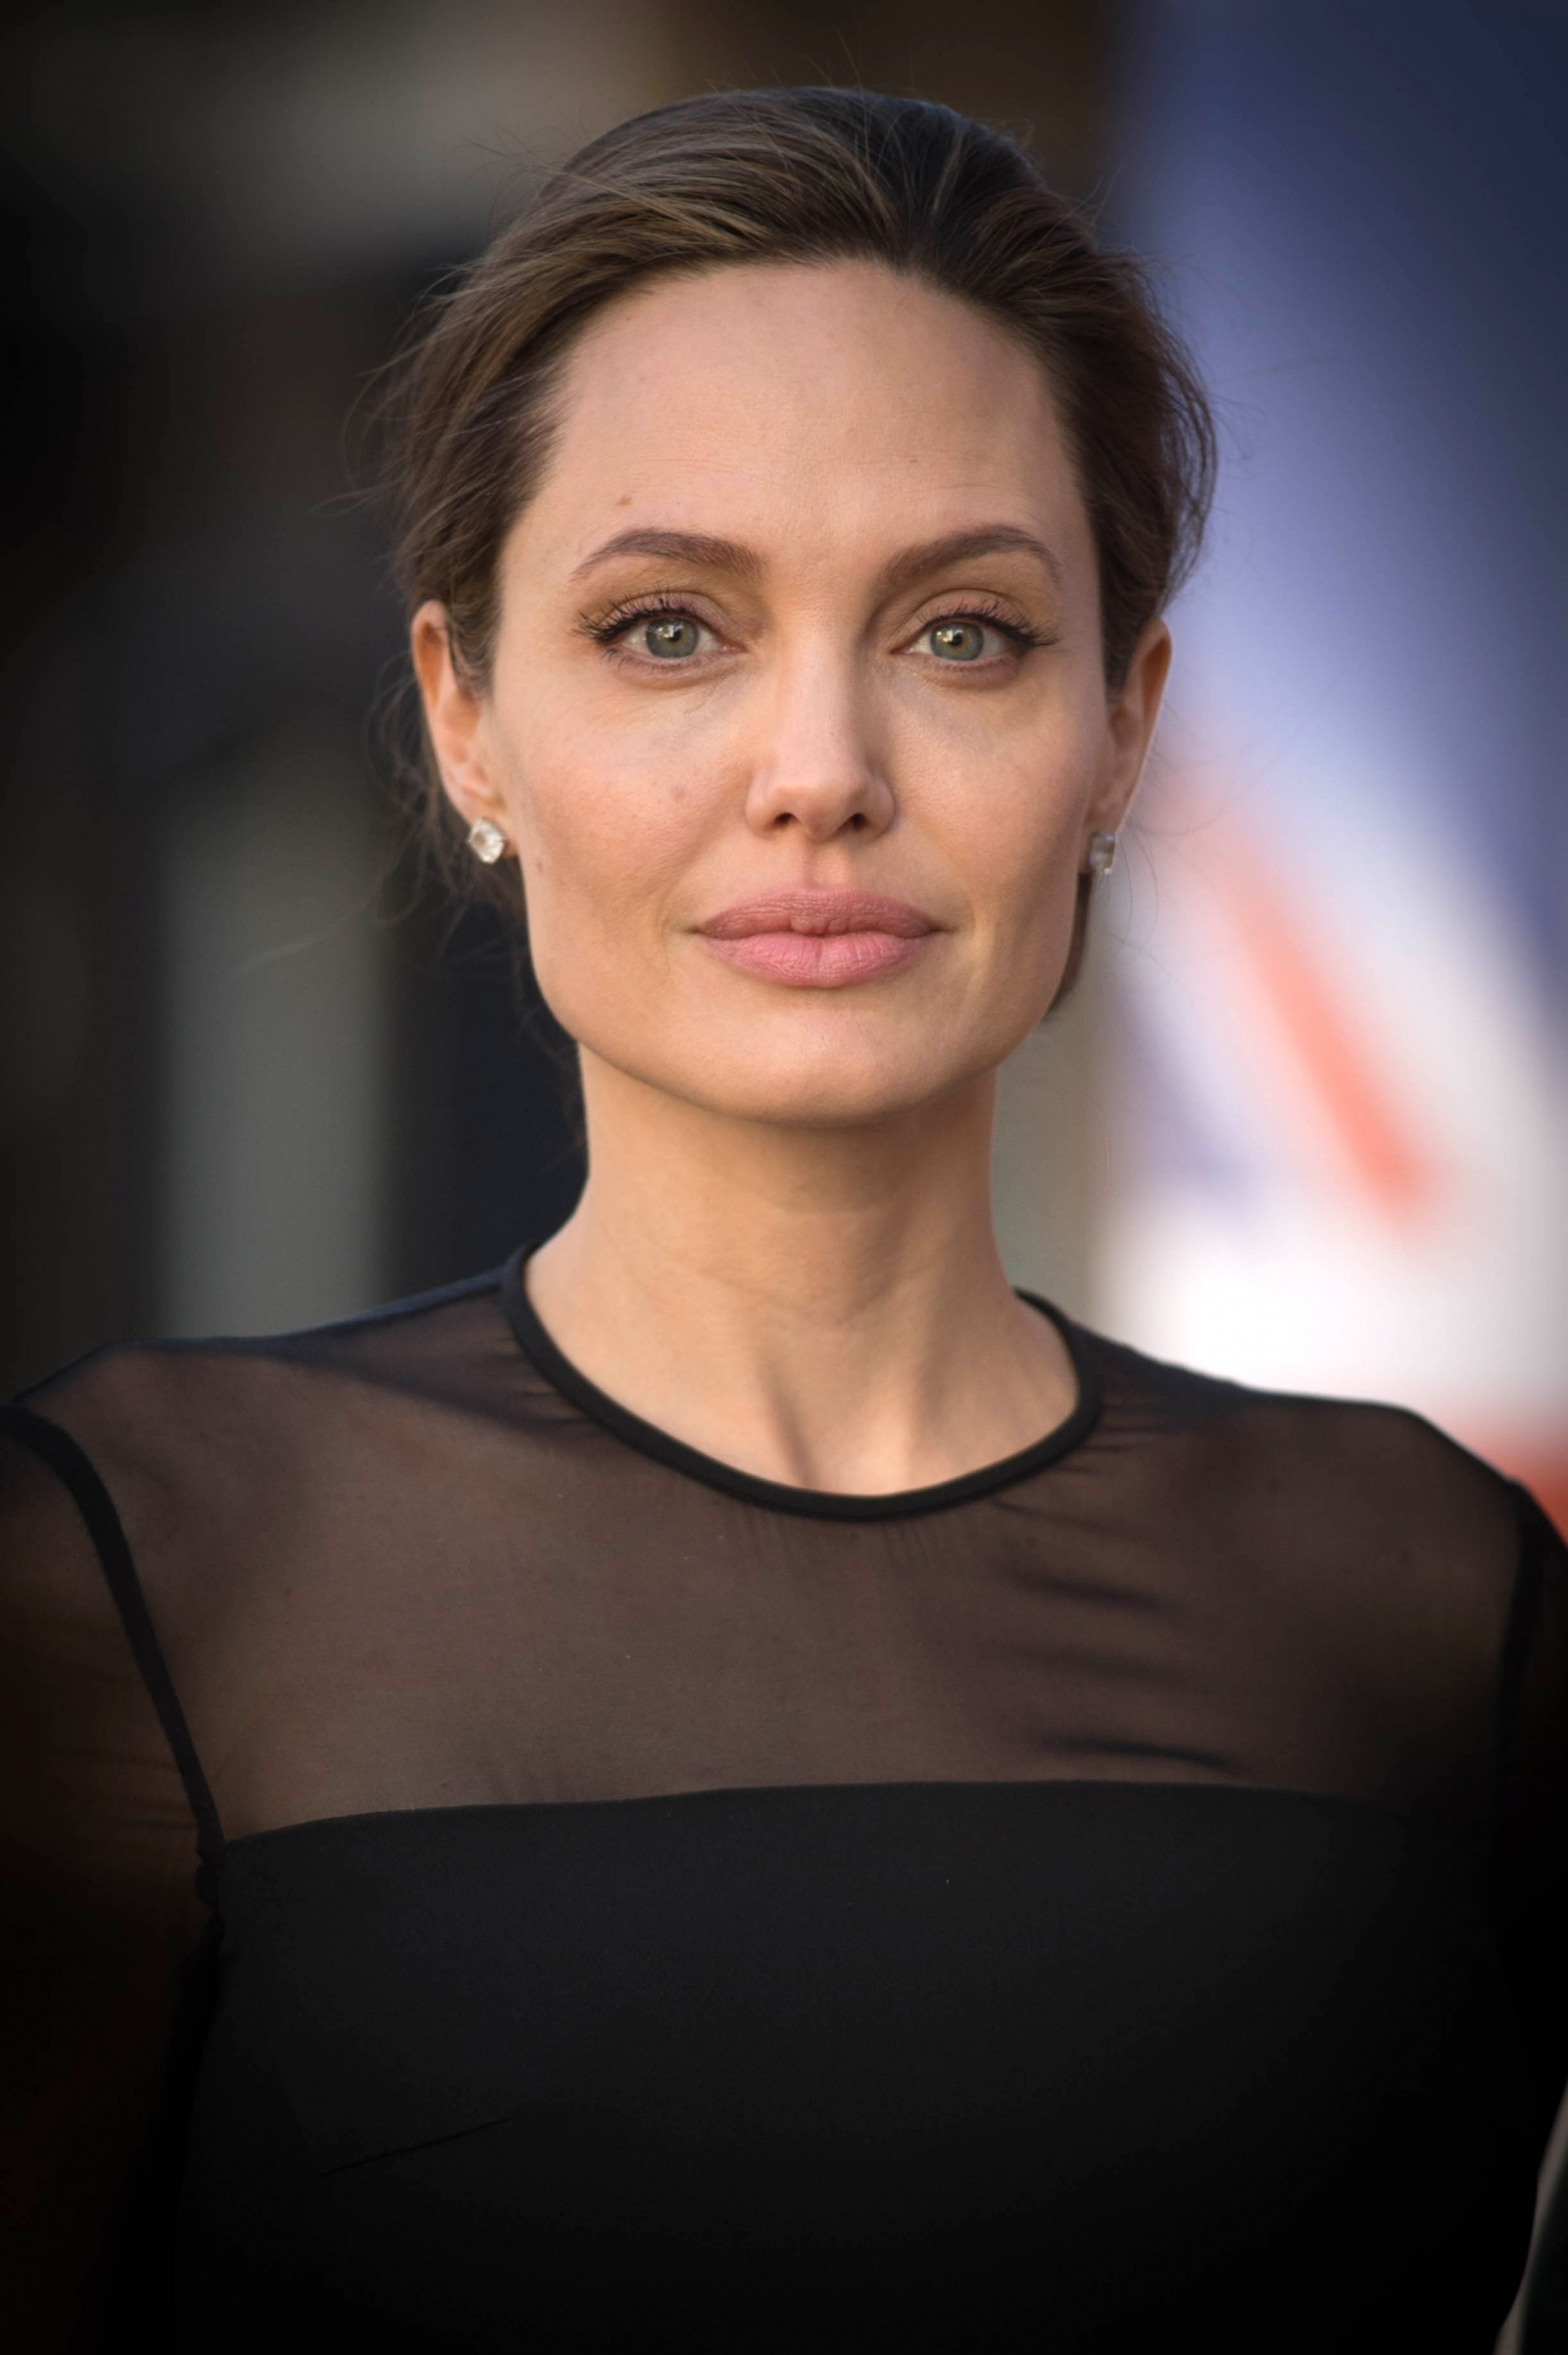 Angelina Jolie branded 'cruel' and 'disgusting' over traumatic casting of orphans: 'F*****g sick'